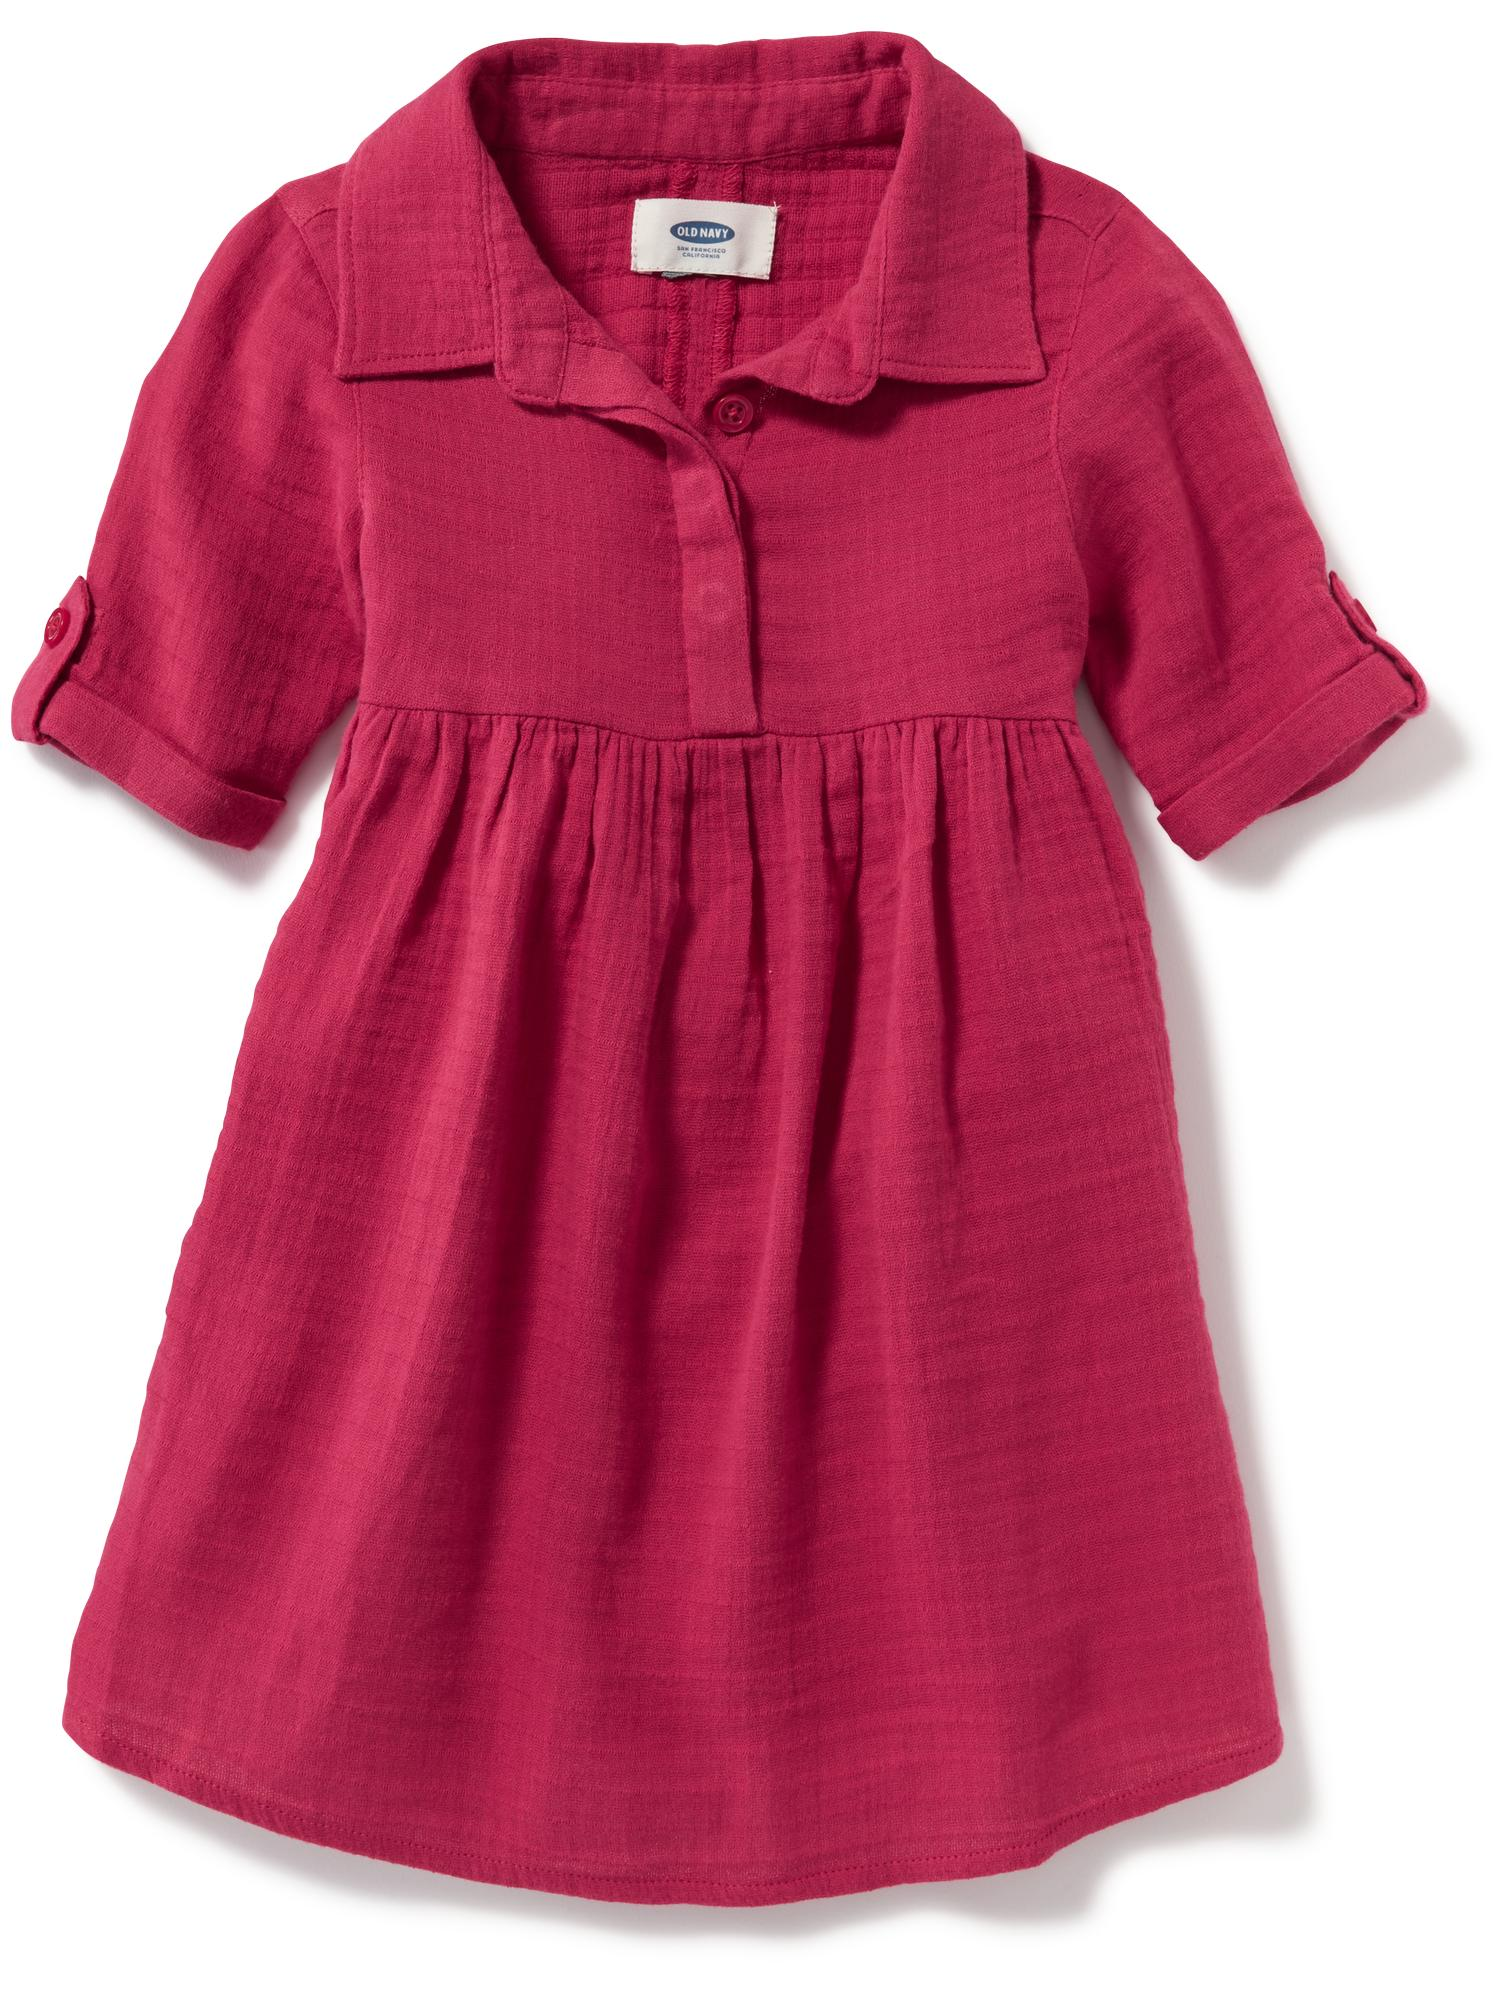 Dobby Swing Dress for Toddler | Old Navy